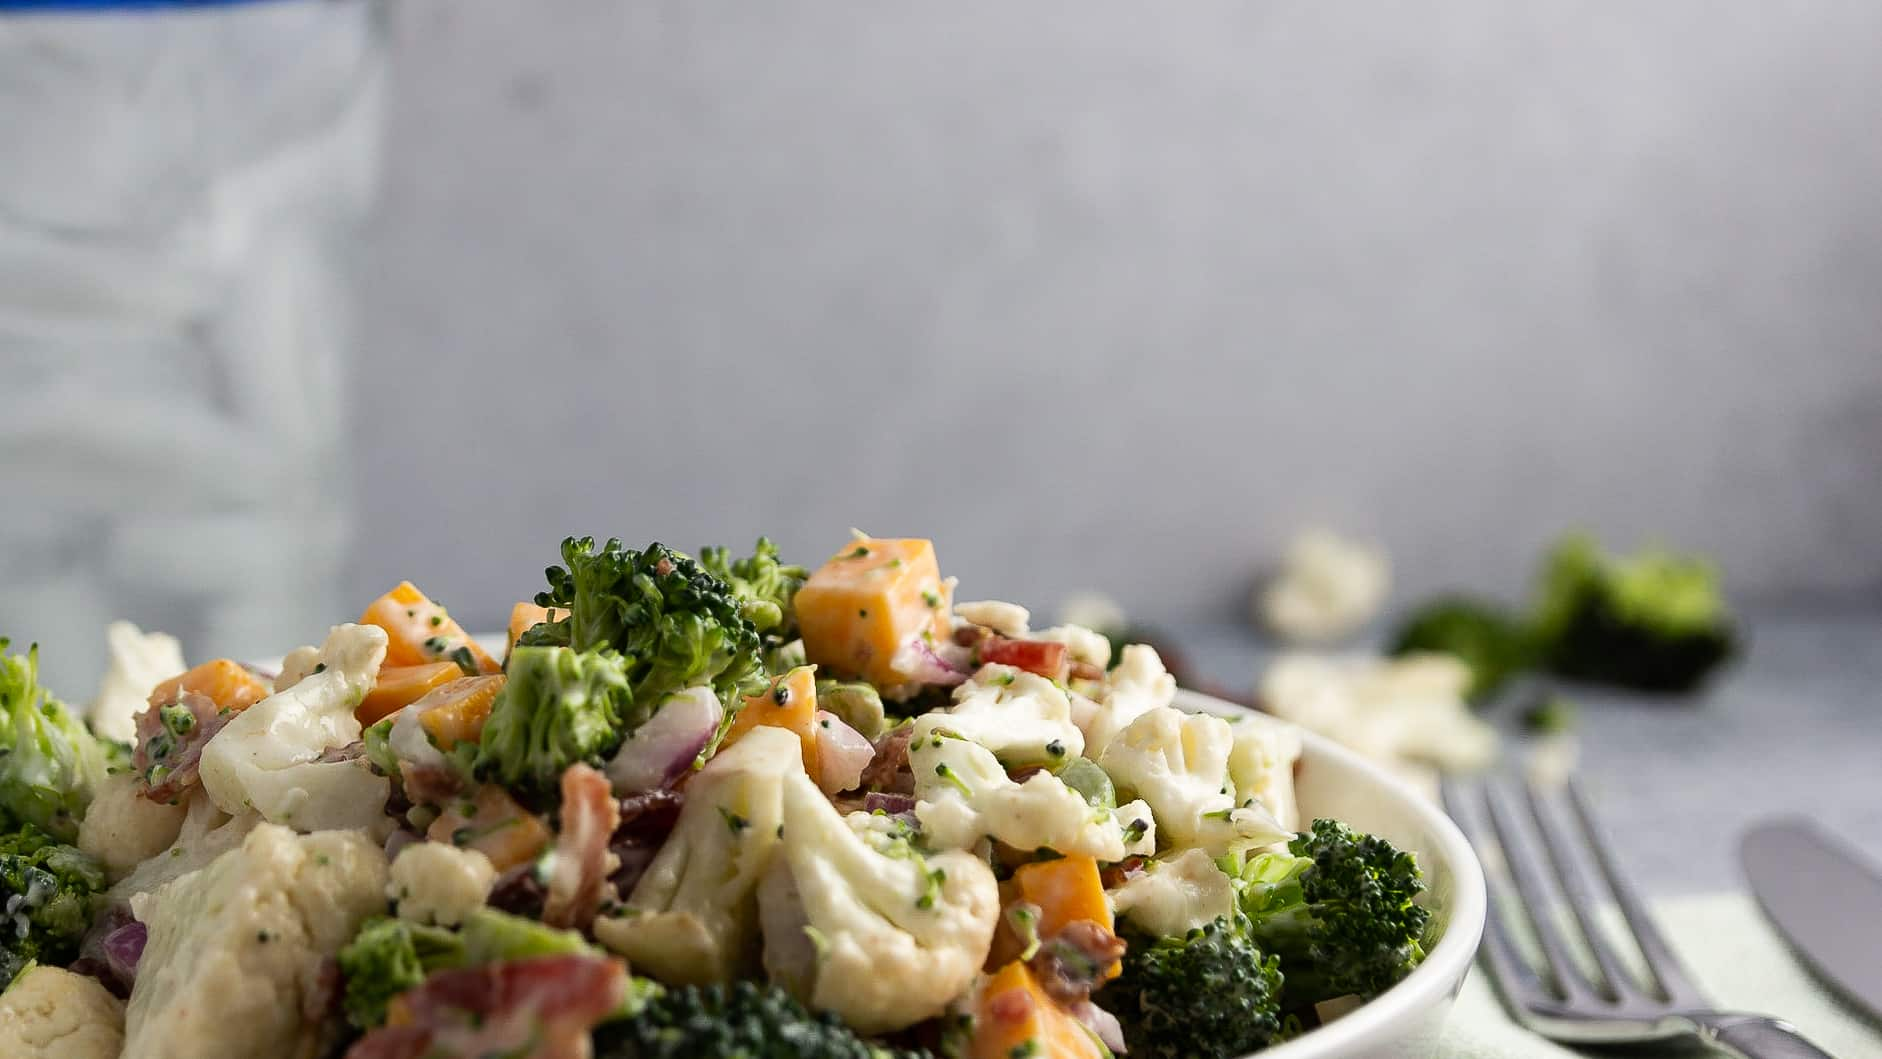 A bowl of delicious cold broccoli cauliflower salad